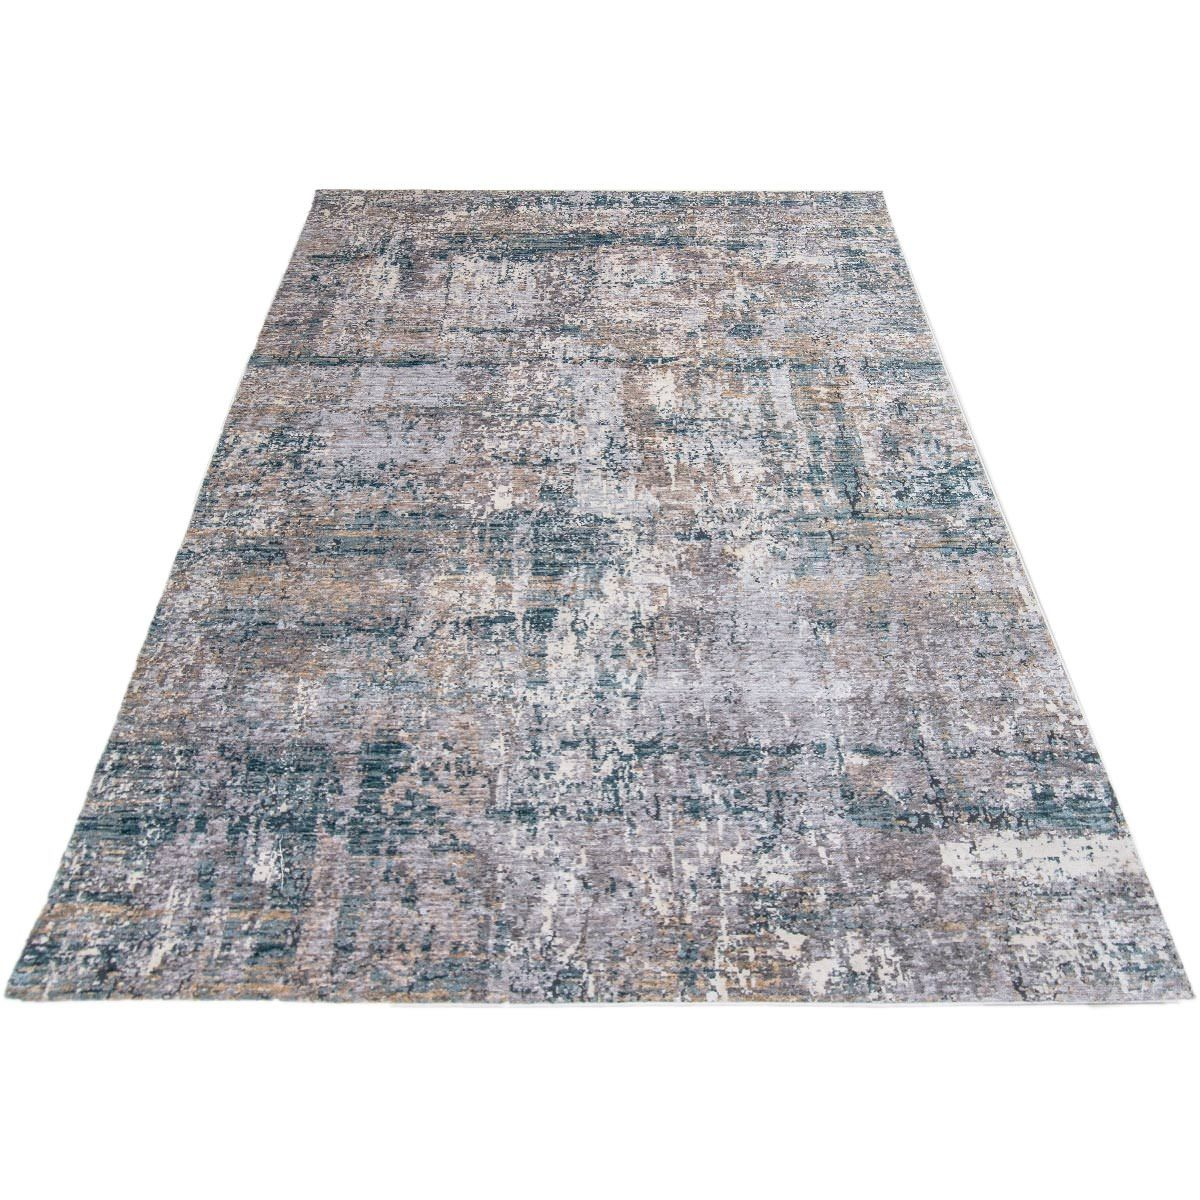 Miami Rug 03 Yellow/Blue/Grey 6